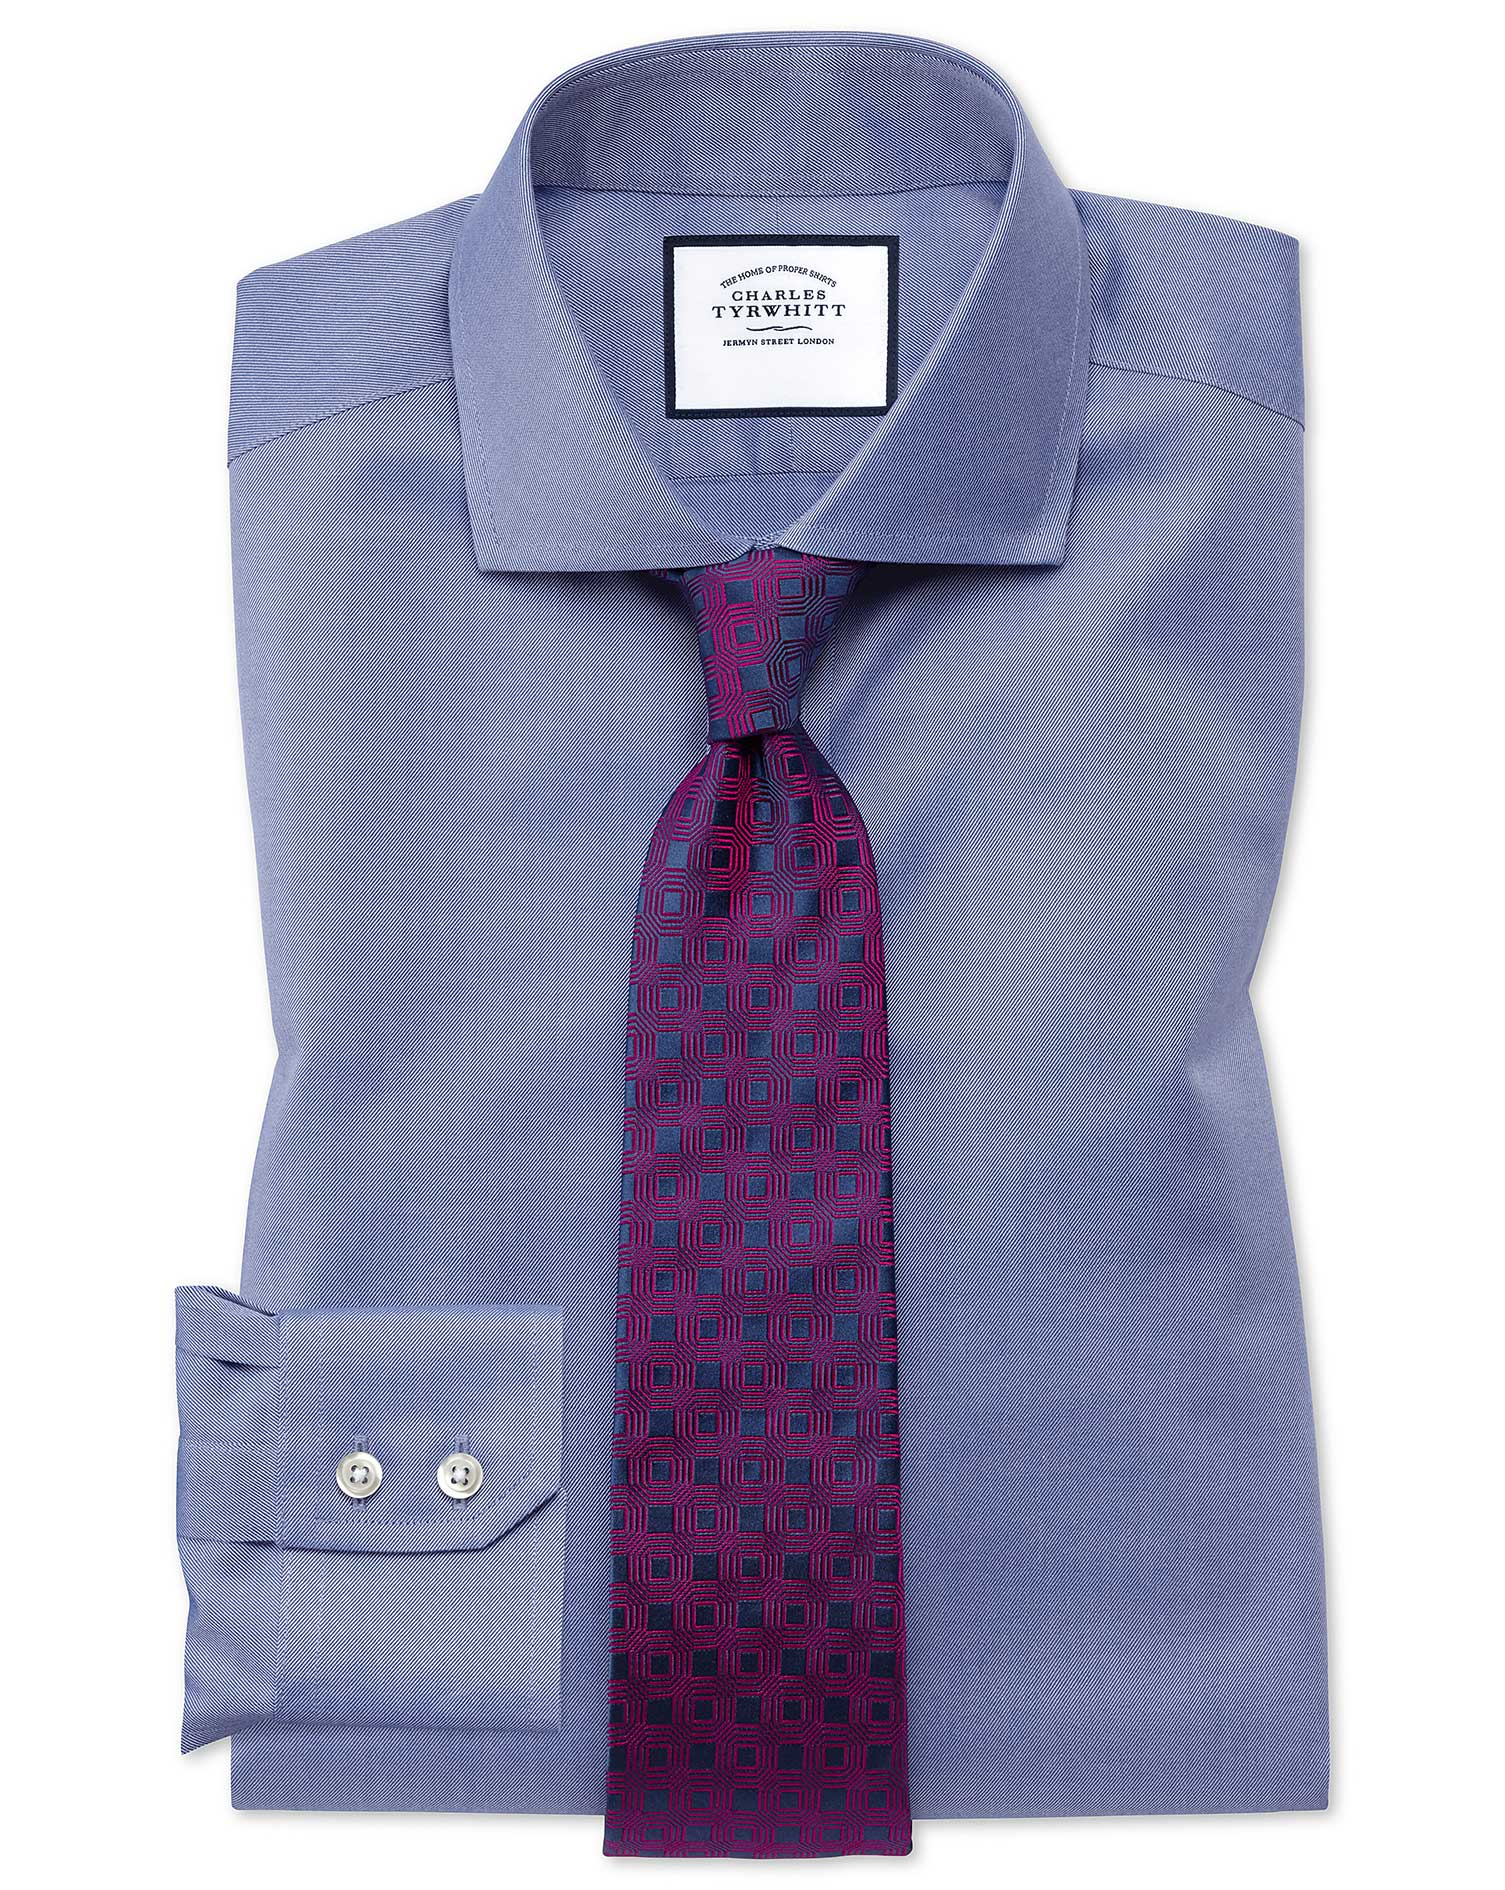 Slim Fit Mid-Blue Non-Iron Twill Cutaway Collar Cotton Formal Shirt Single Cuff Size 15.5/34 by Char